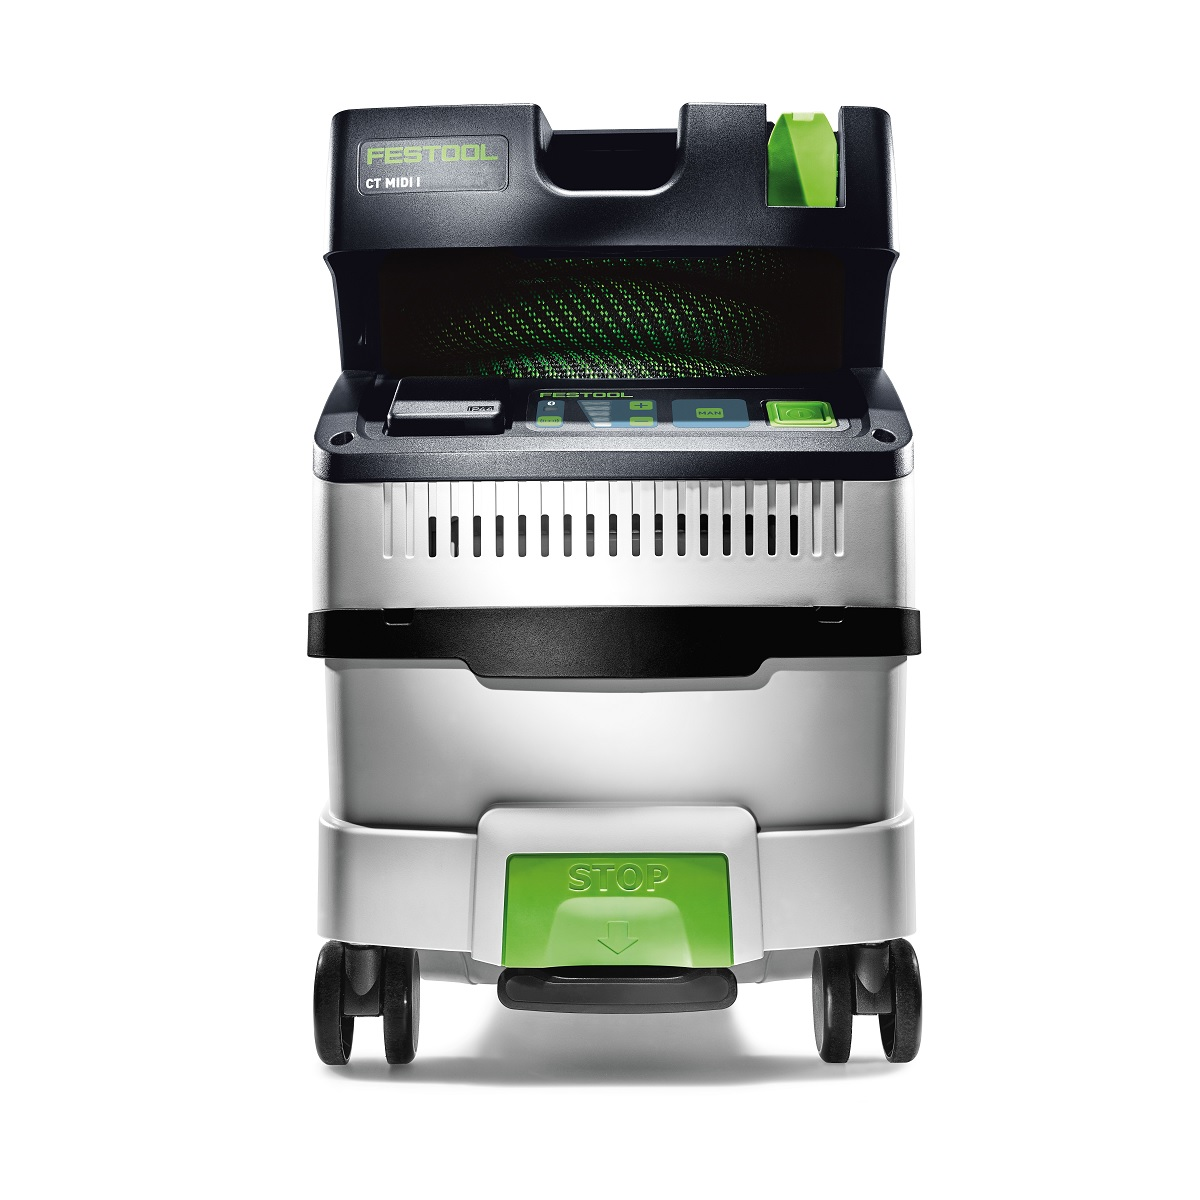 Festool CT MIDI I with touch controls